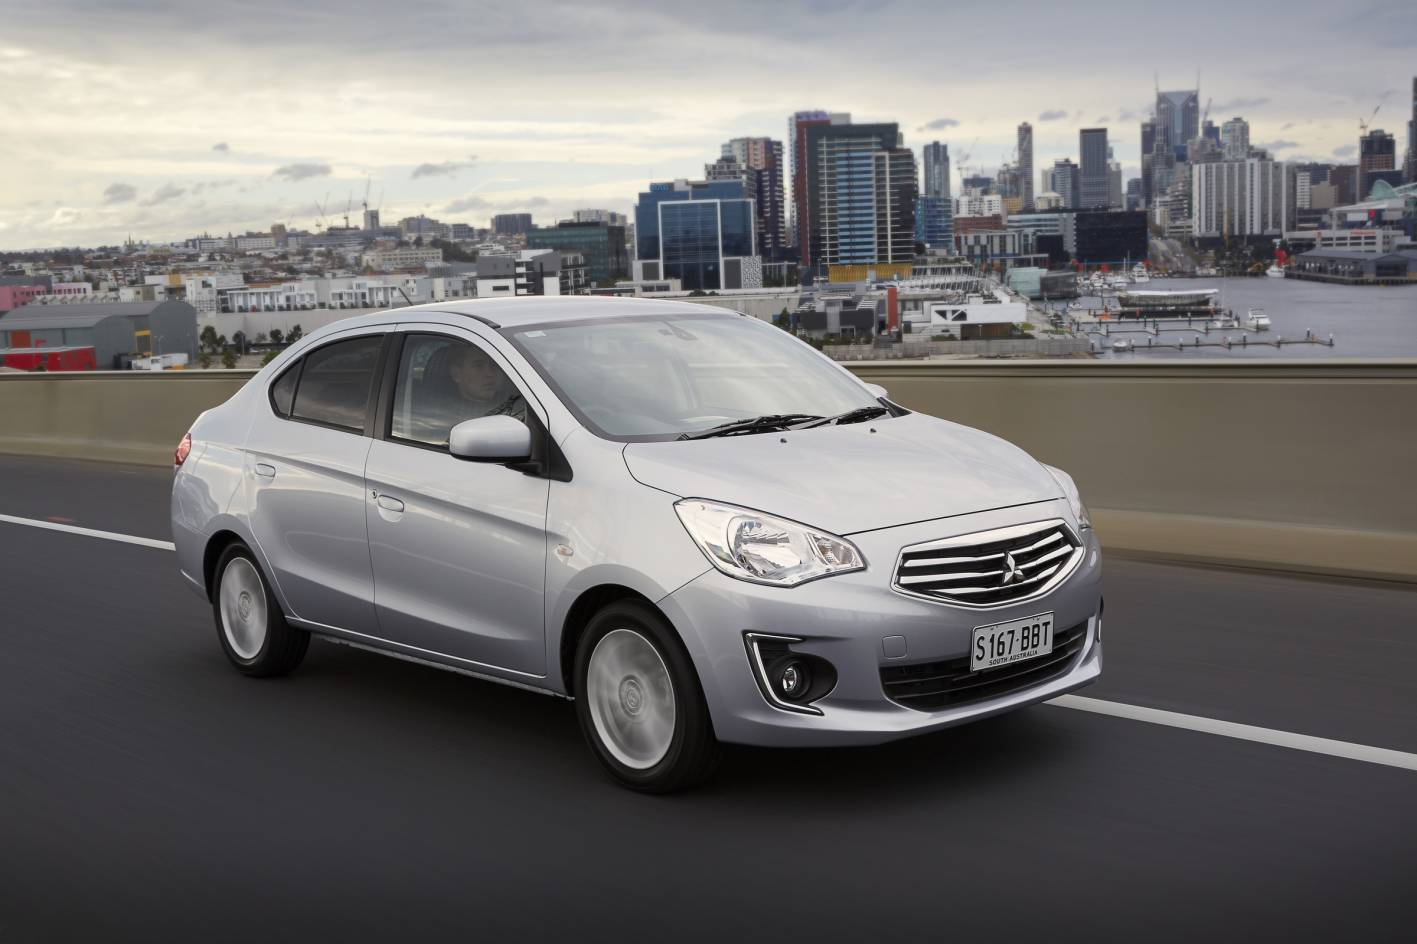 2014 mitsubishi mirage sedan review caradvice